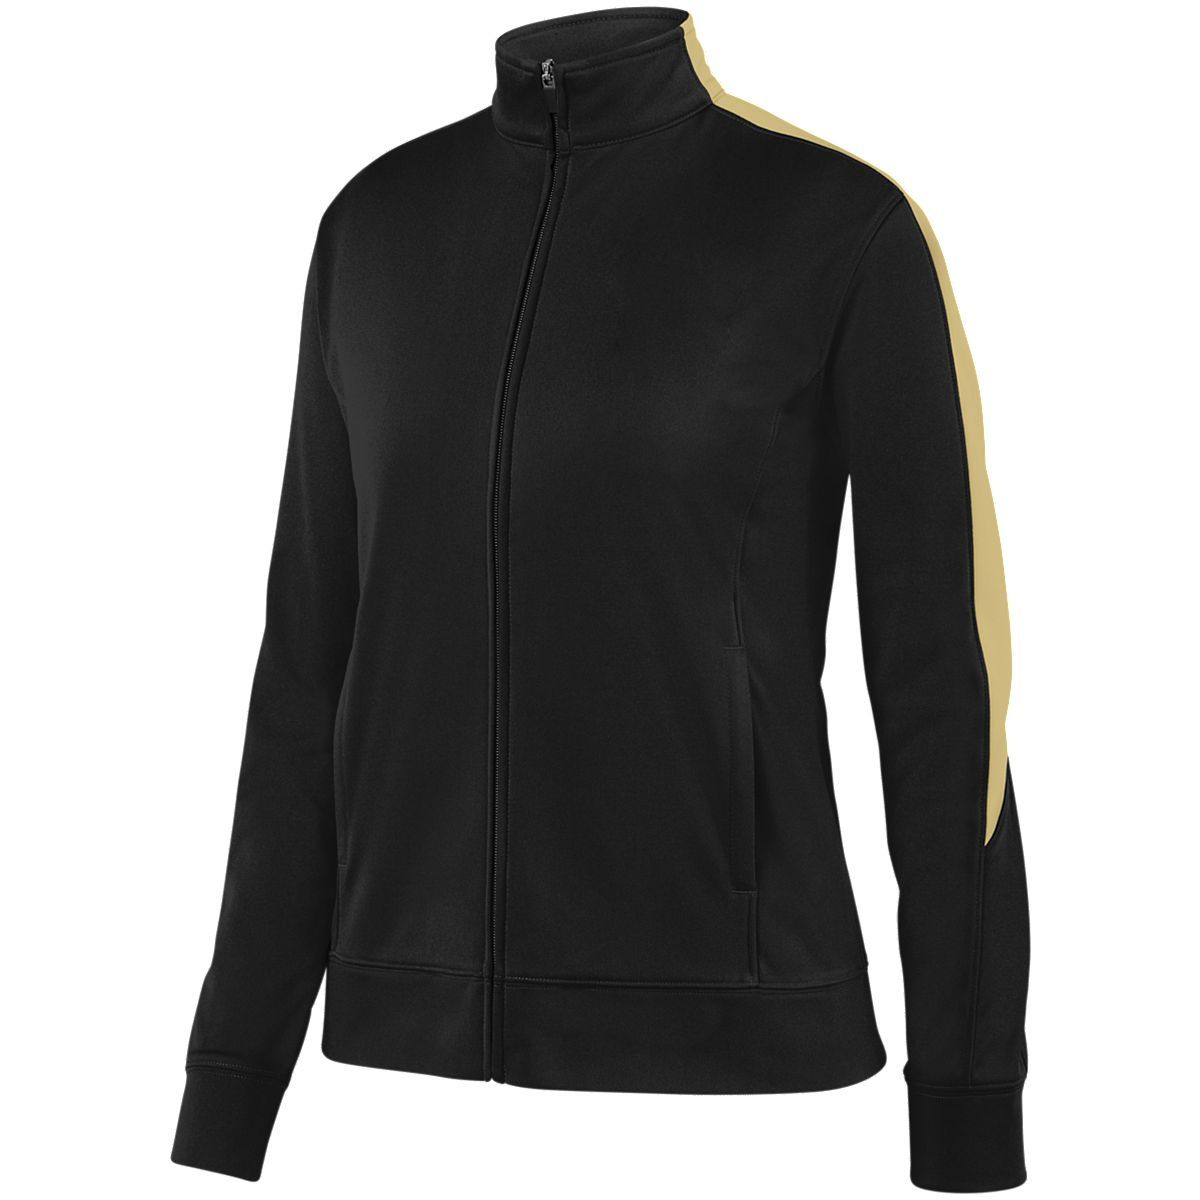 Ladies Medalist Jacket 2.0 - BLACK/VEGAS GOLD